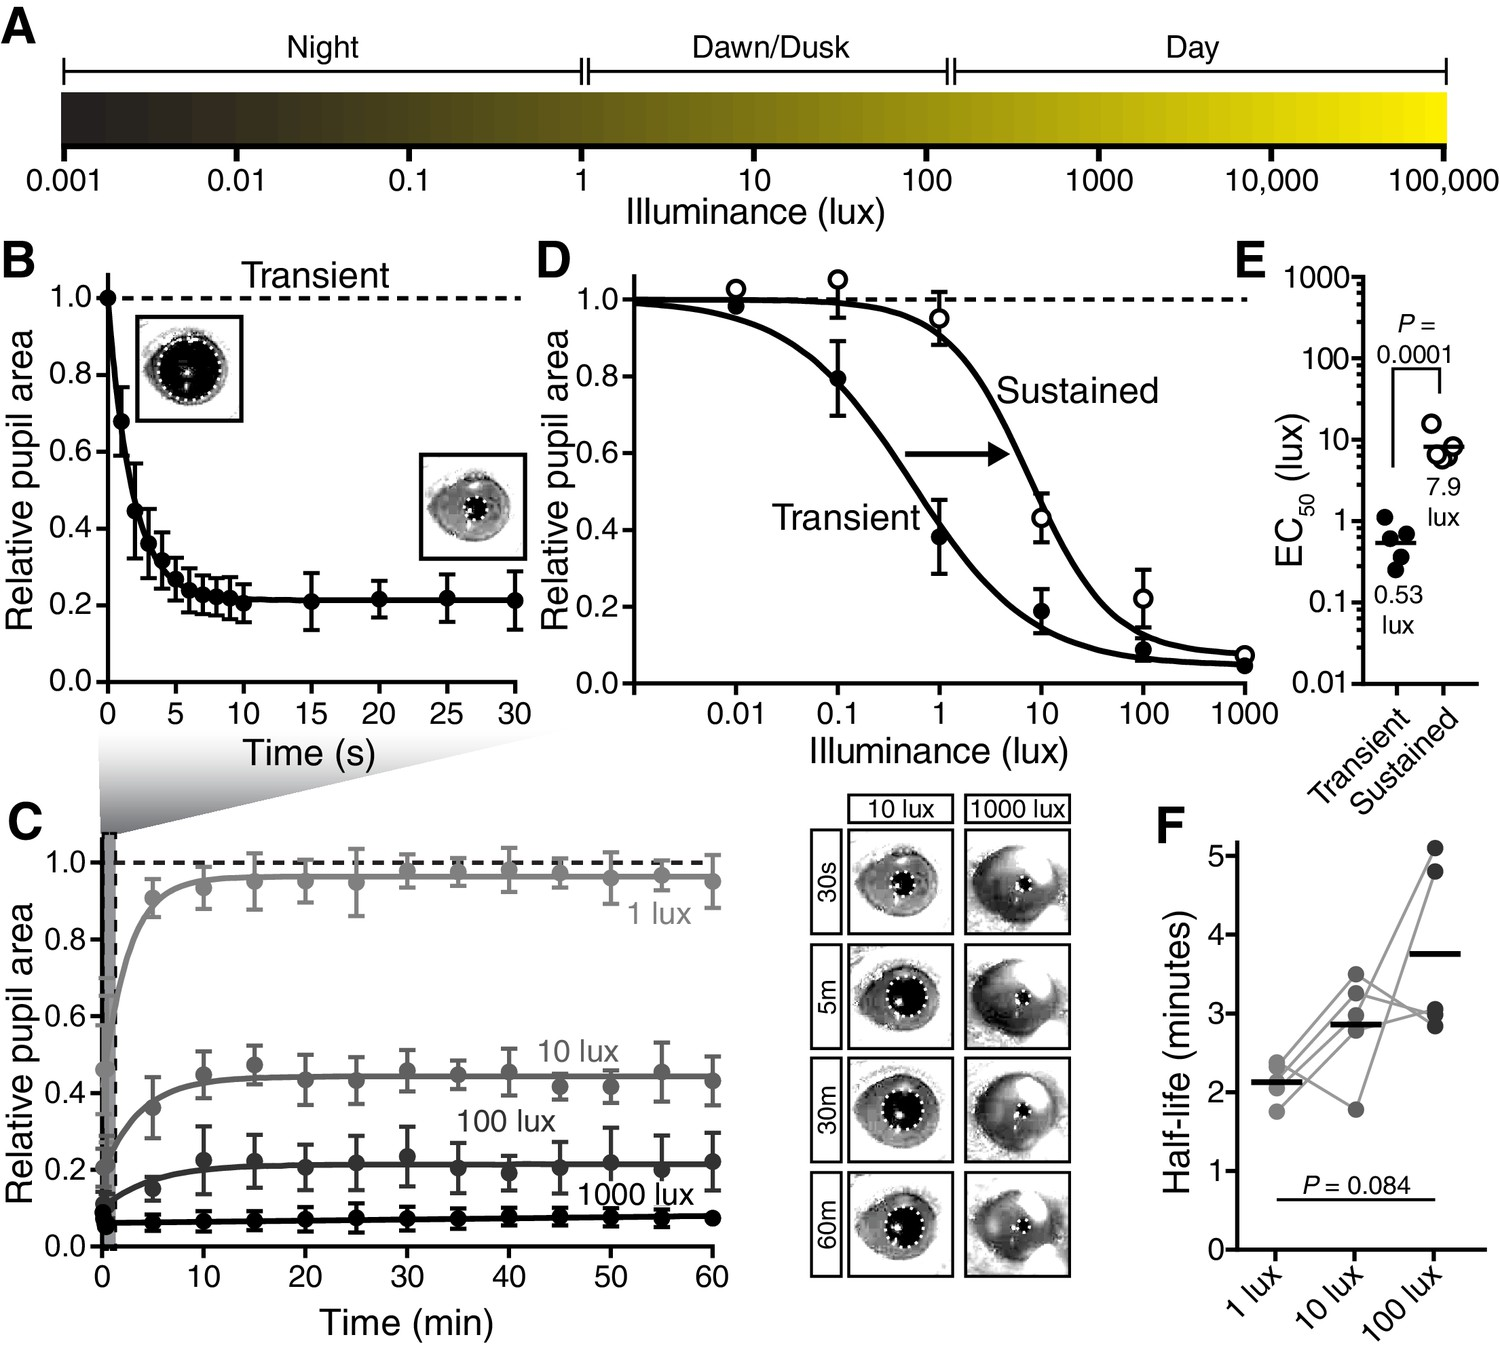 A Visual Circuit Uses Complementary Mechanisms To Support Transient Pole Diagram Moreover Single Switch With Two Lights On 2 The Pupillary Light Response Contains Phases And Sustained